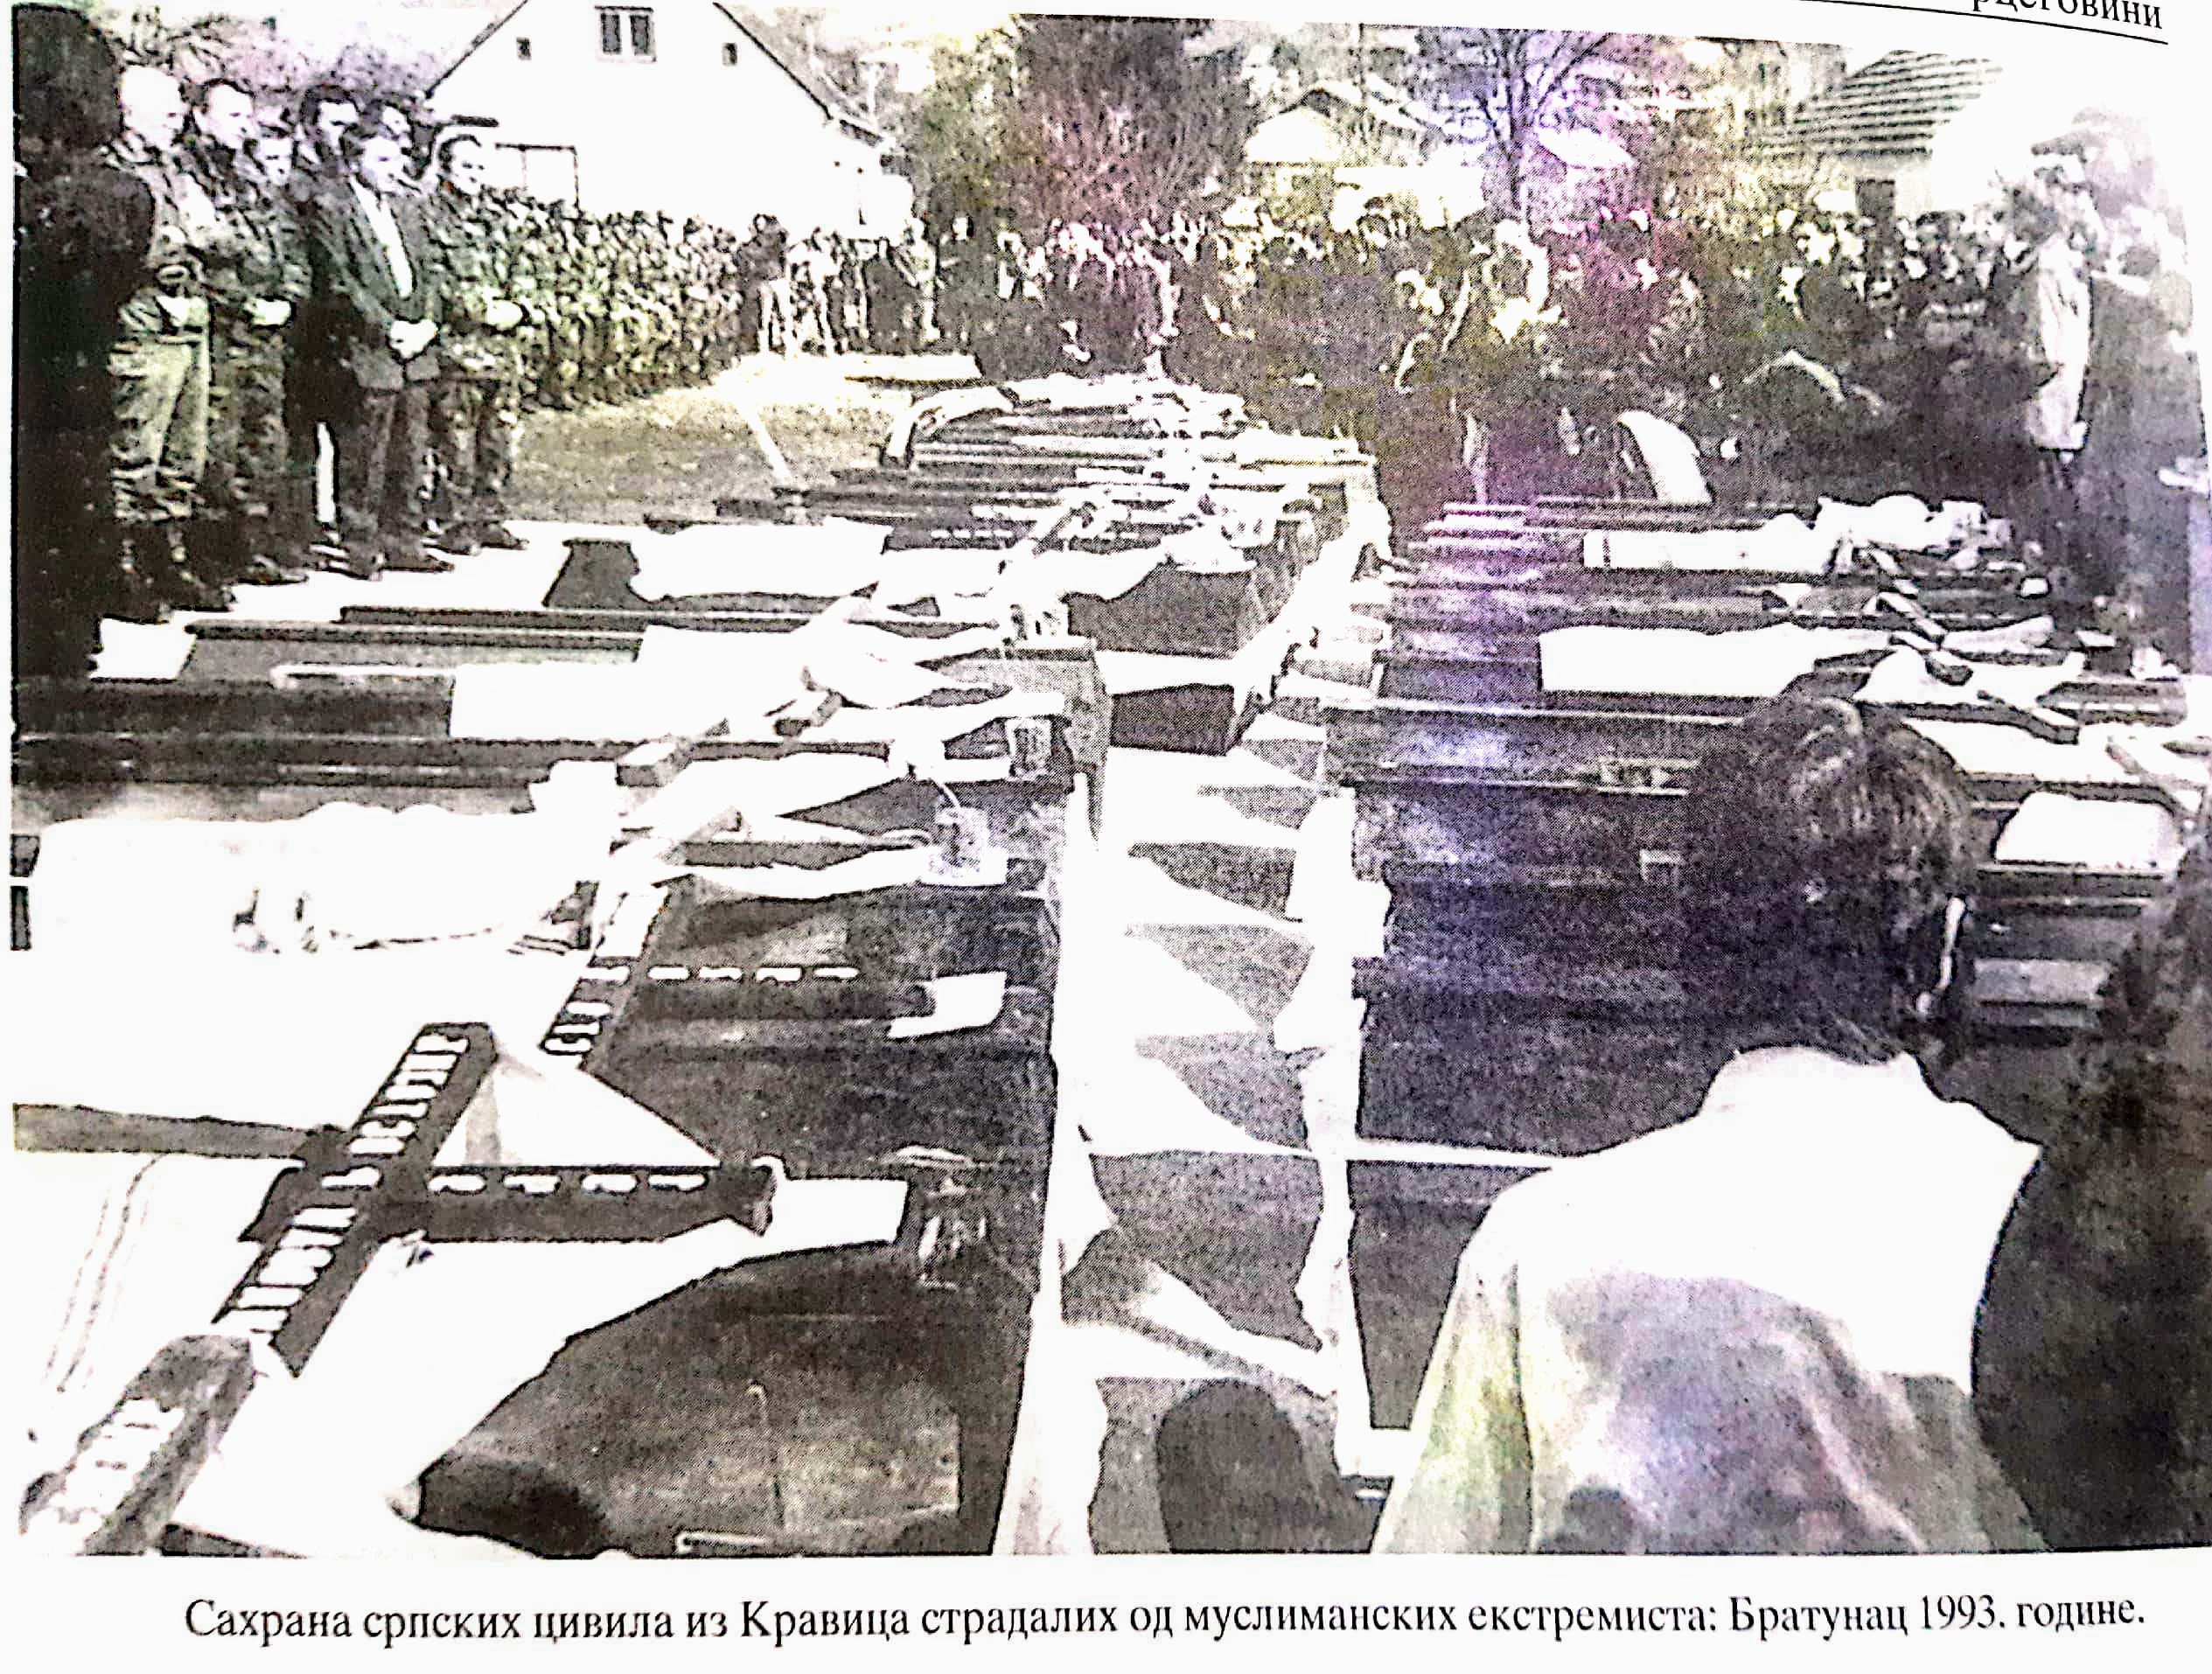 The Srebrenica Auschwitz:  Death Camps with almost no survivors still without memorials